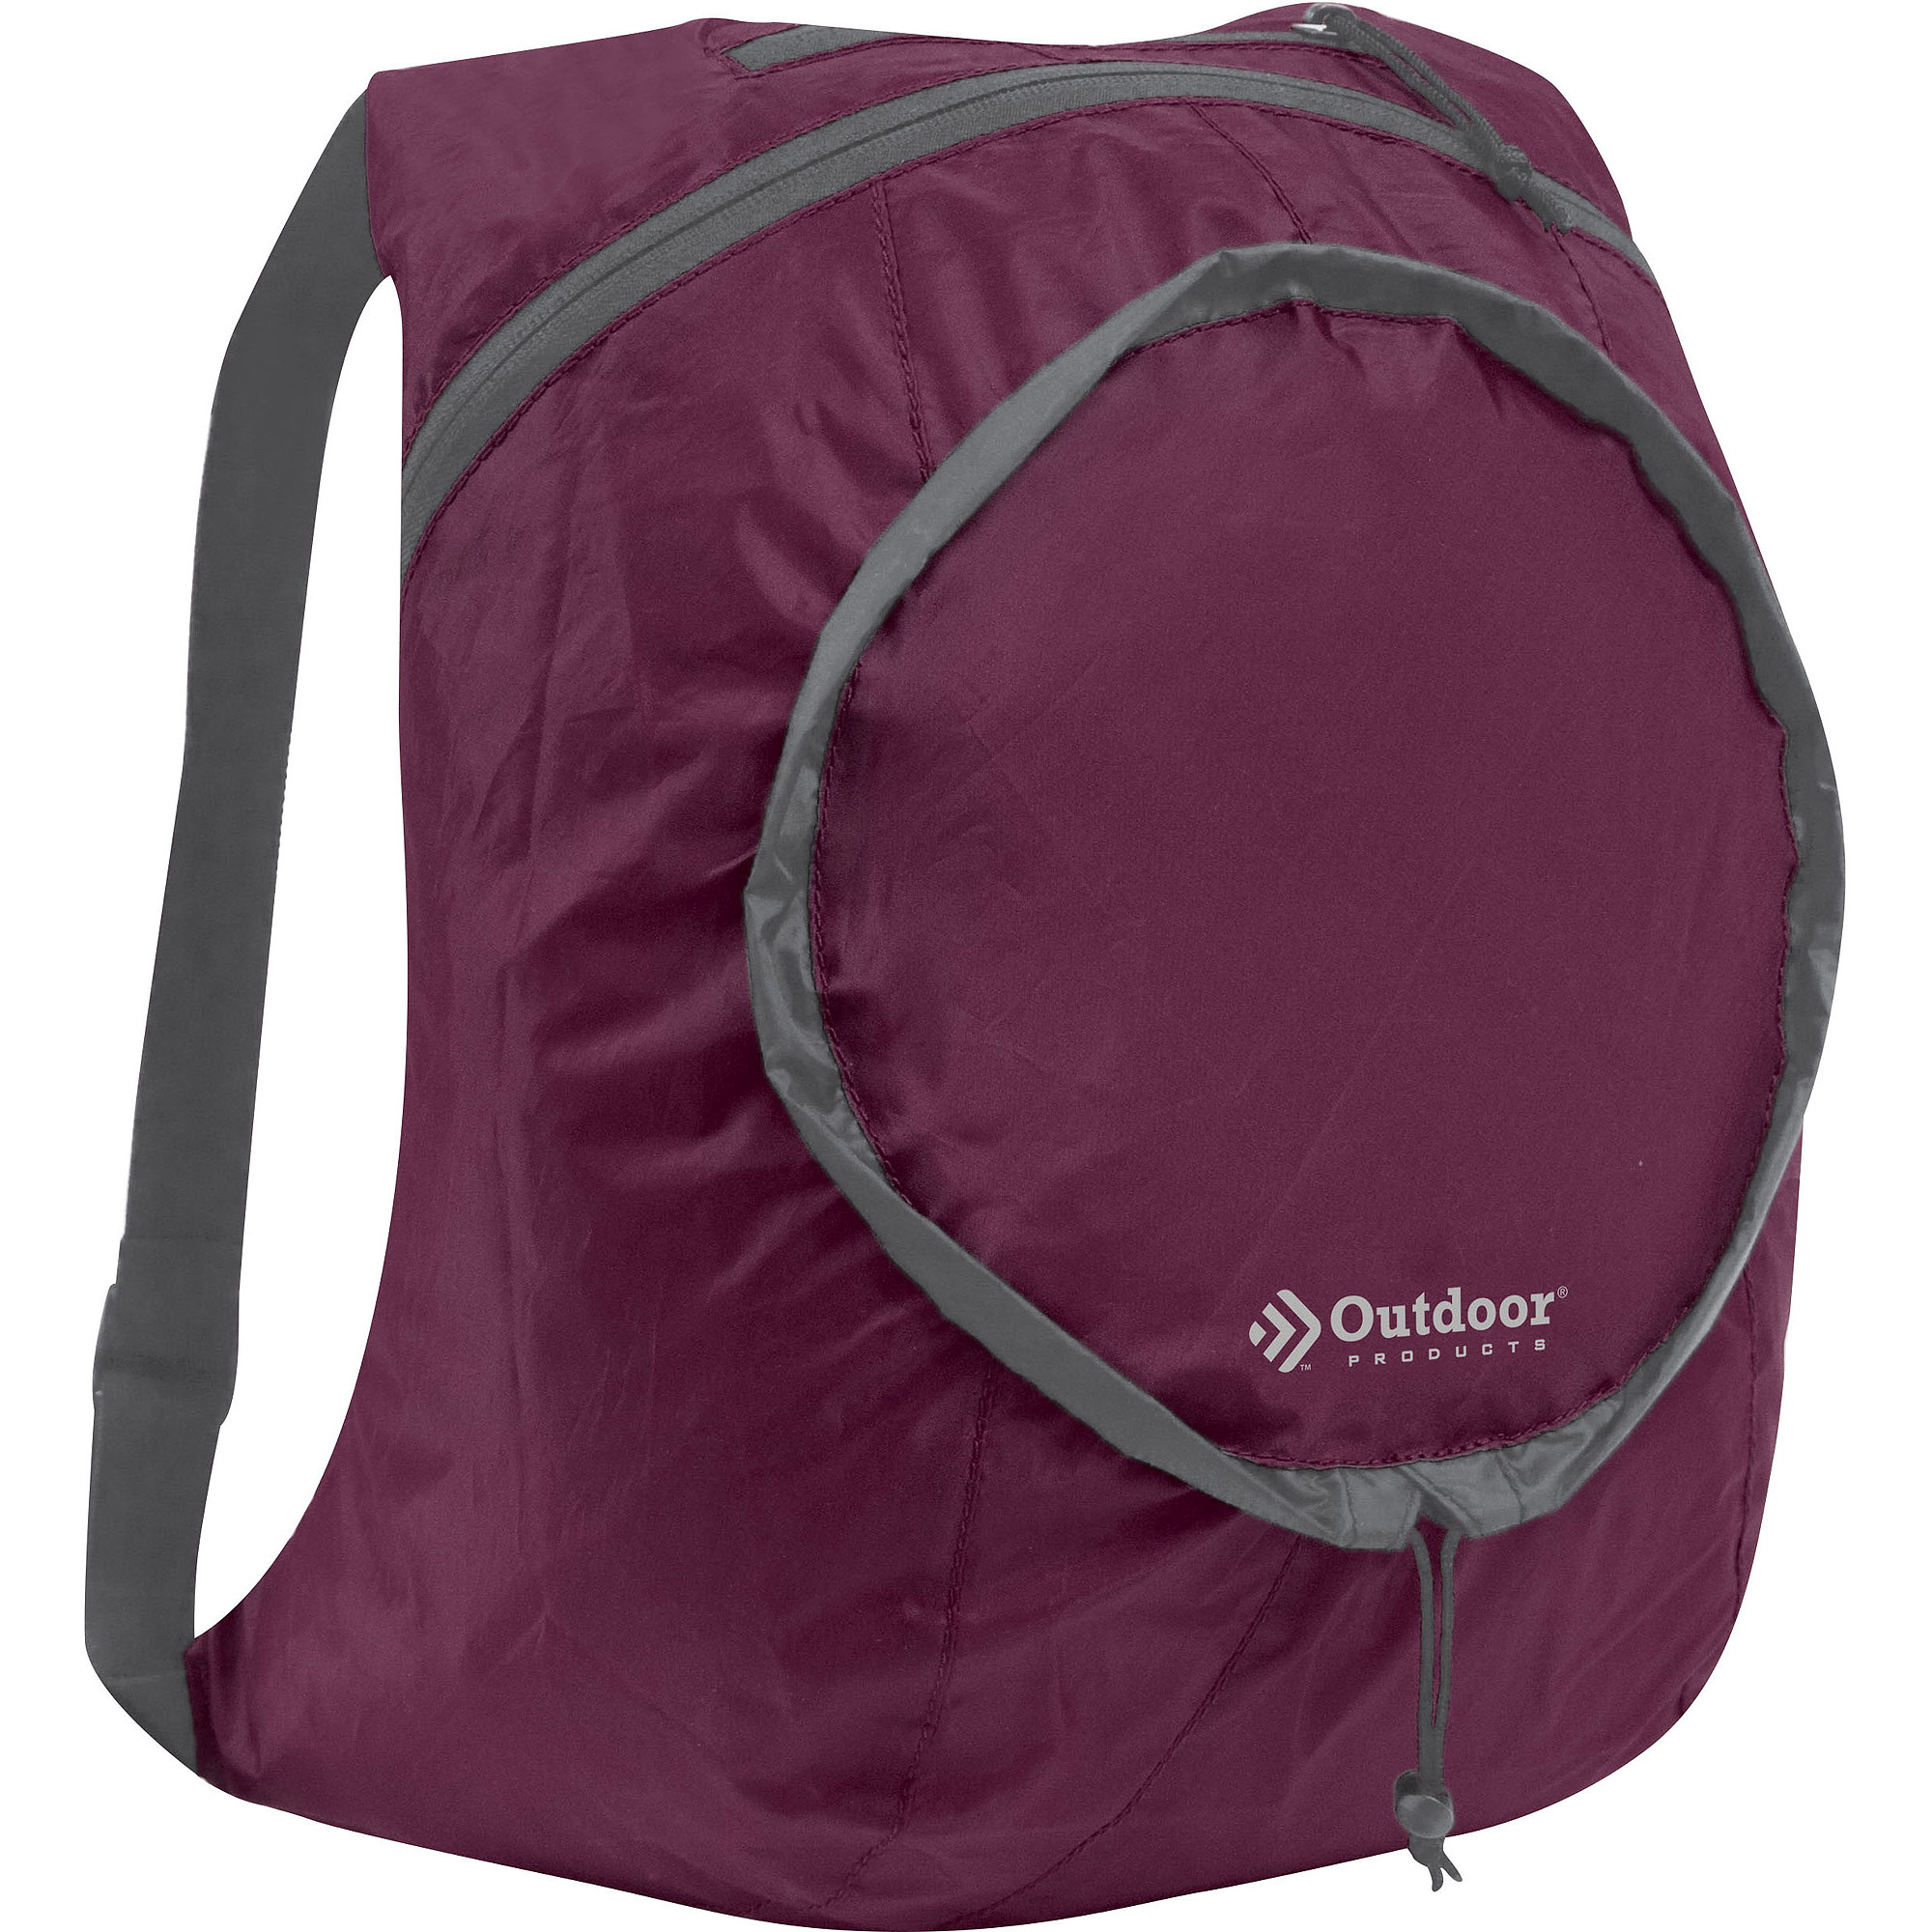 Outdoor Products Packable Backpack Daypack, Purple